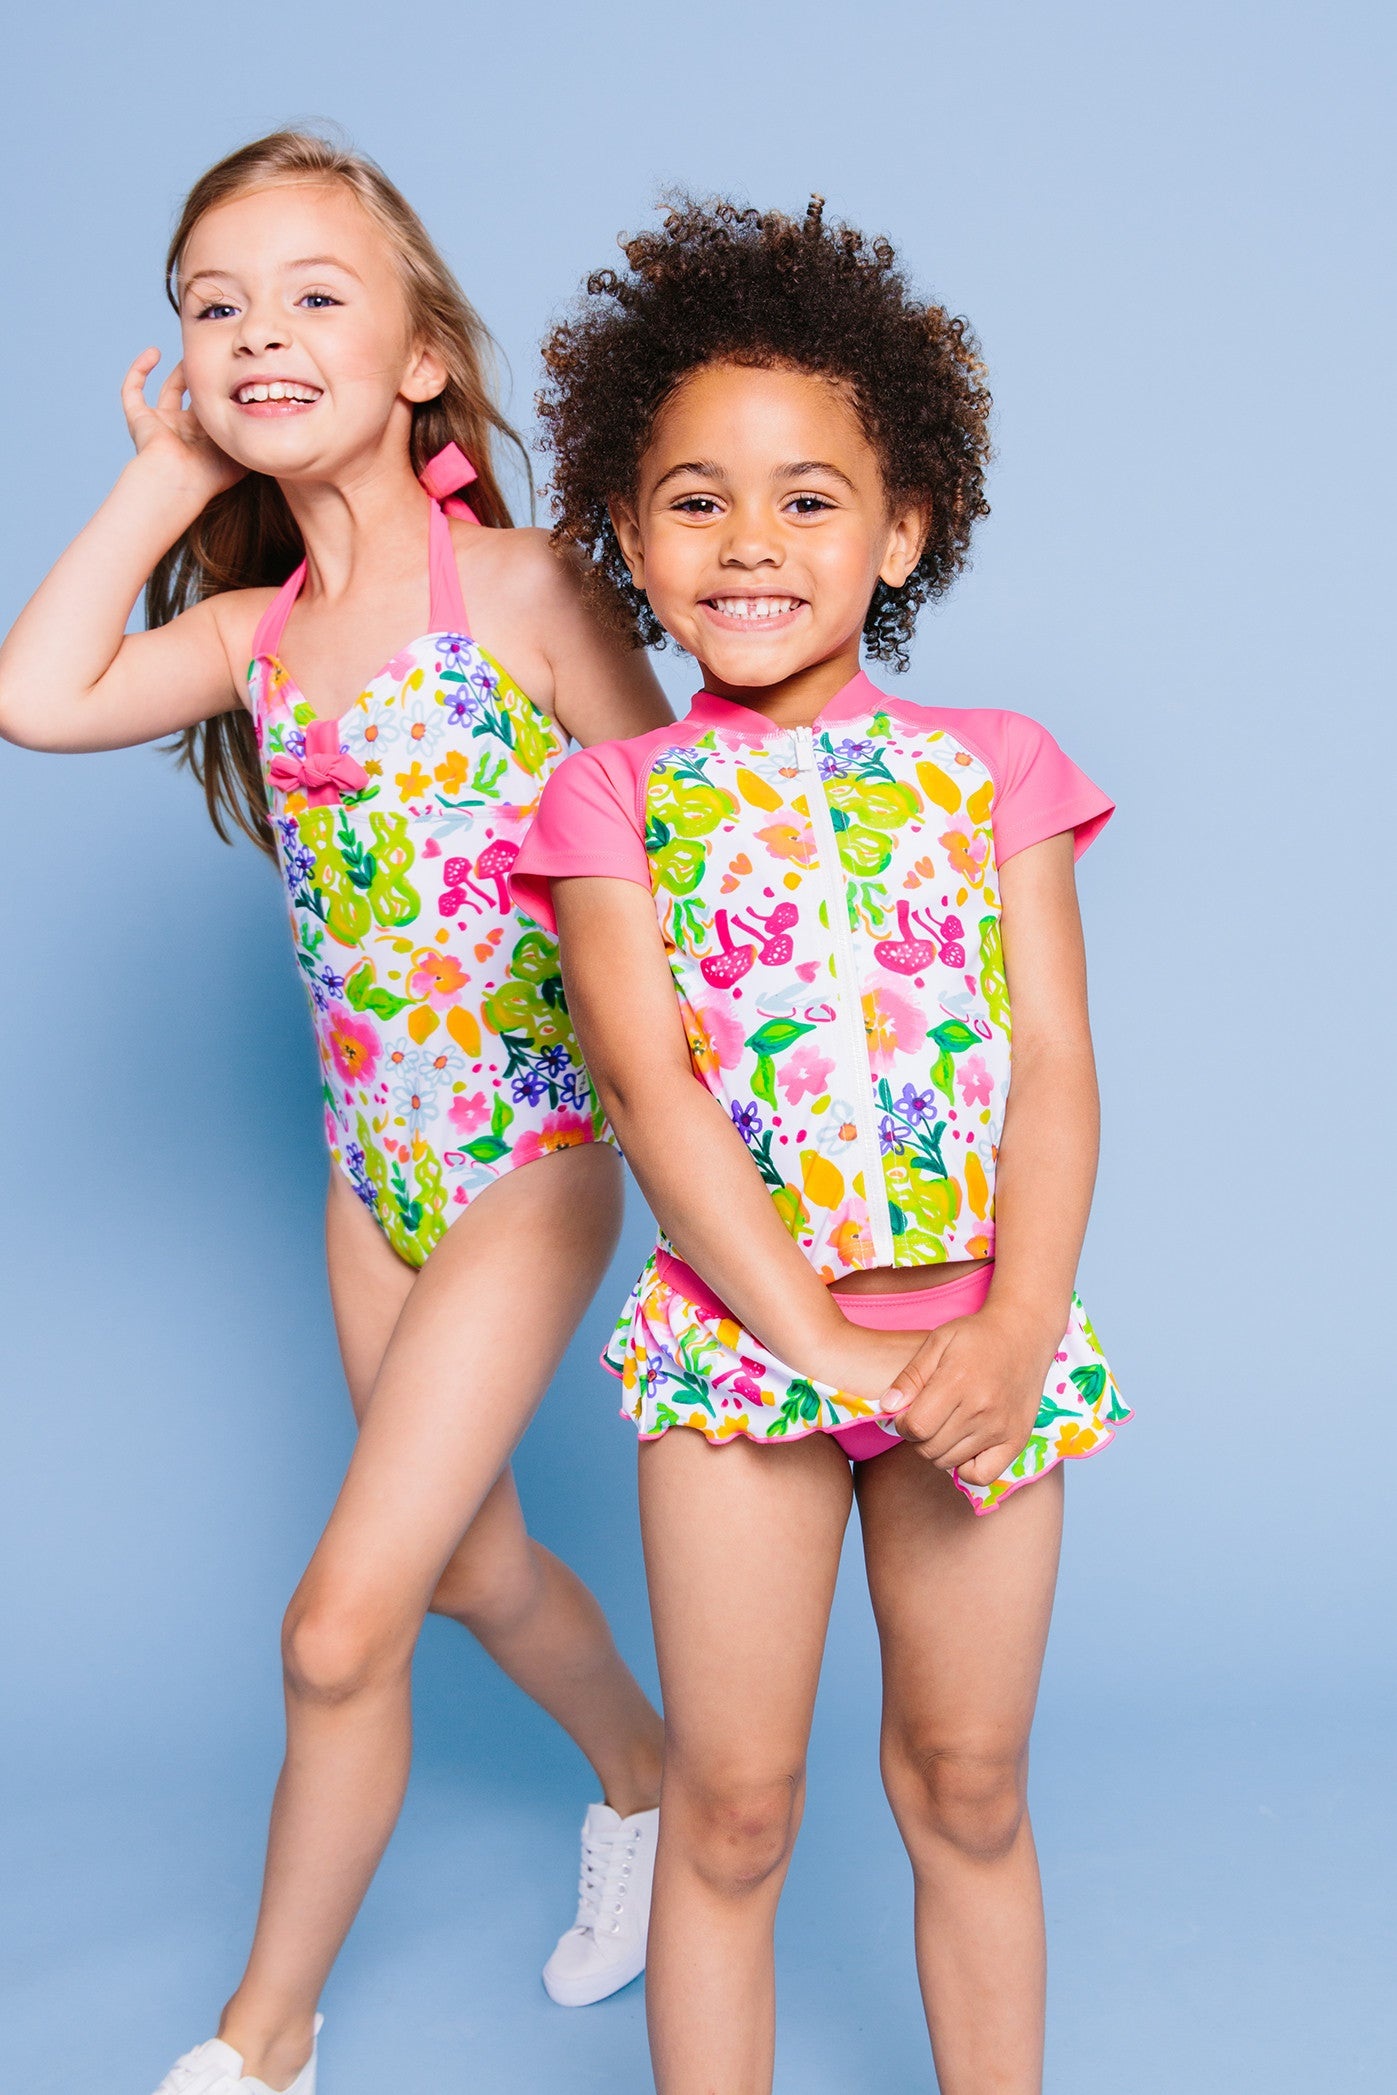 Flower Garden Bikini & Short Sleeve Rash Guard 3-pc Set, pink